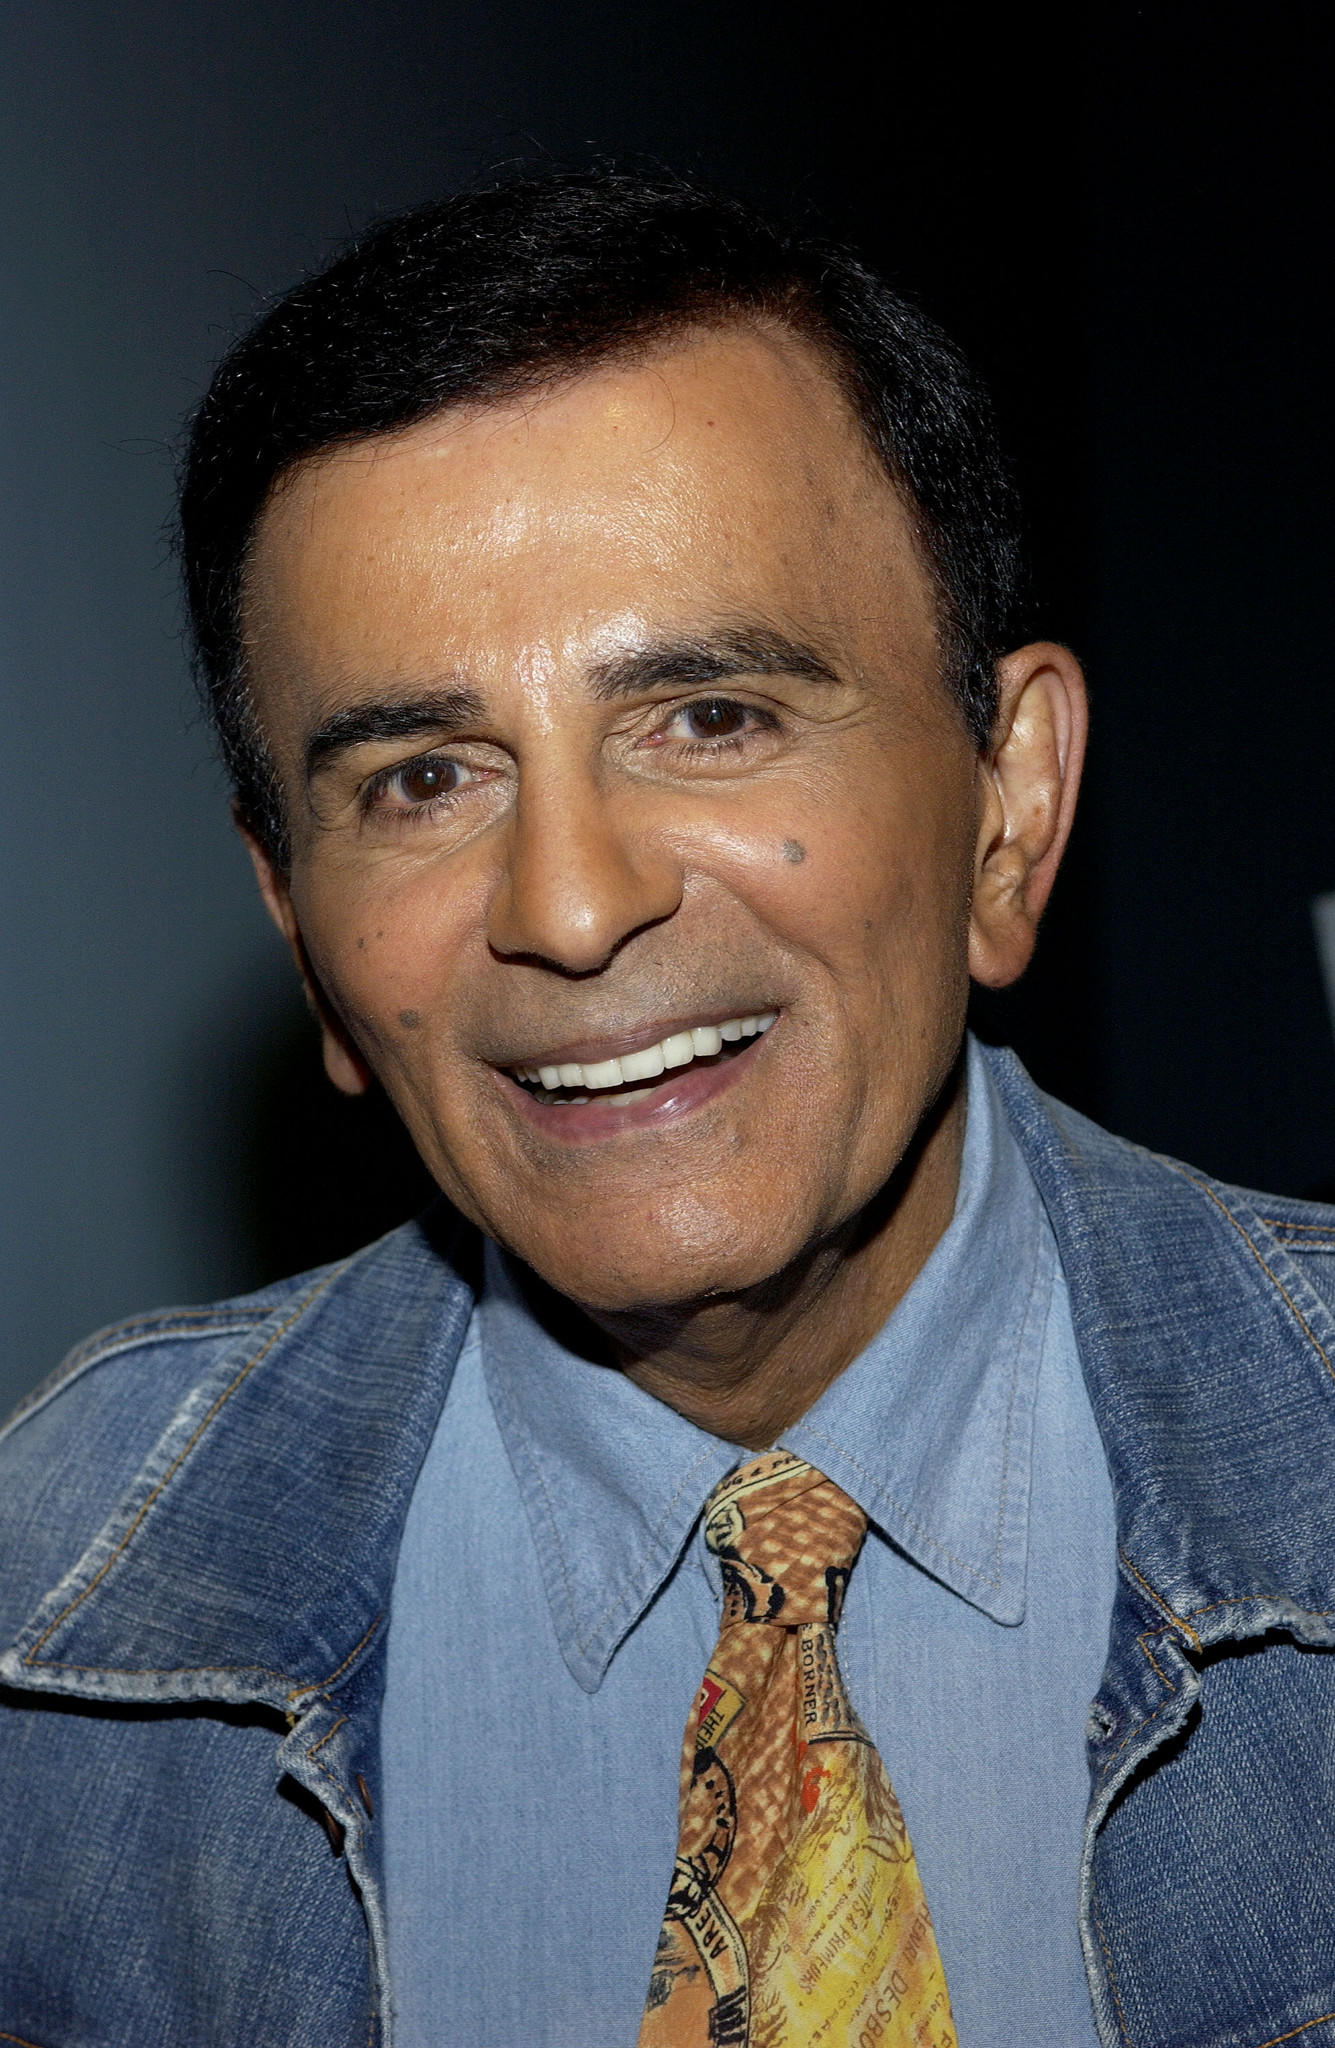 Radio host Casey Kasem has been hospitalized. His daughters have stated that they are considering cutting off life support and feeding tubes.